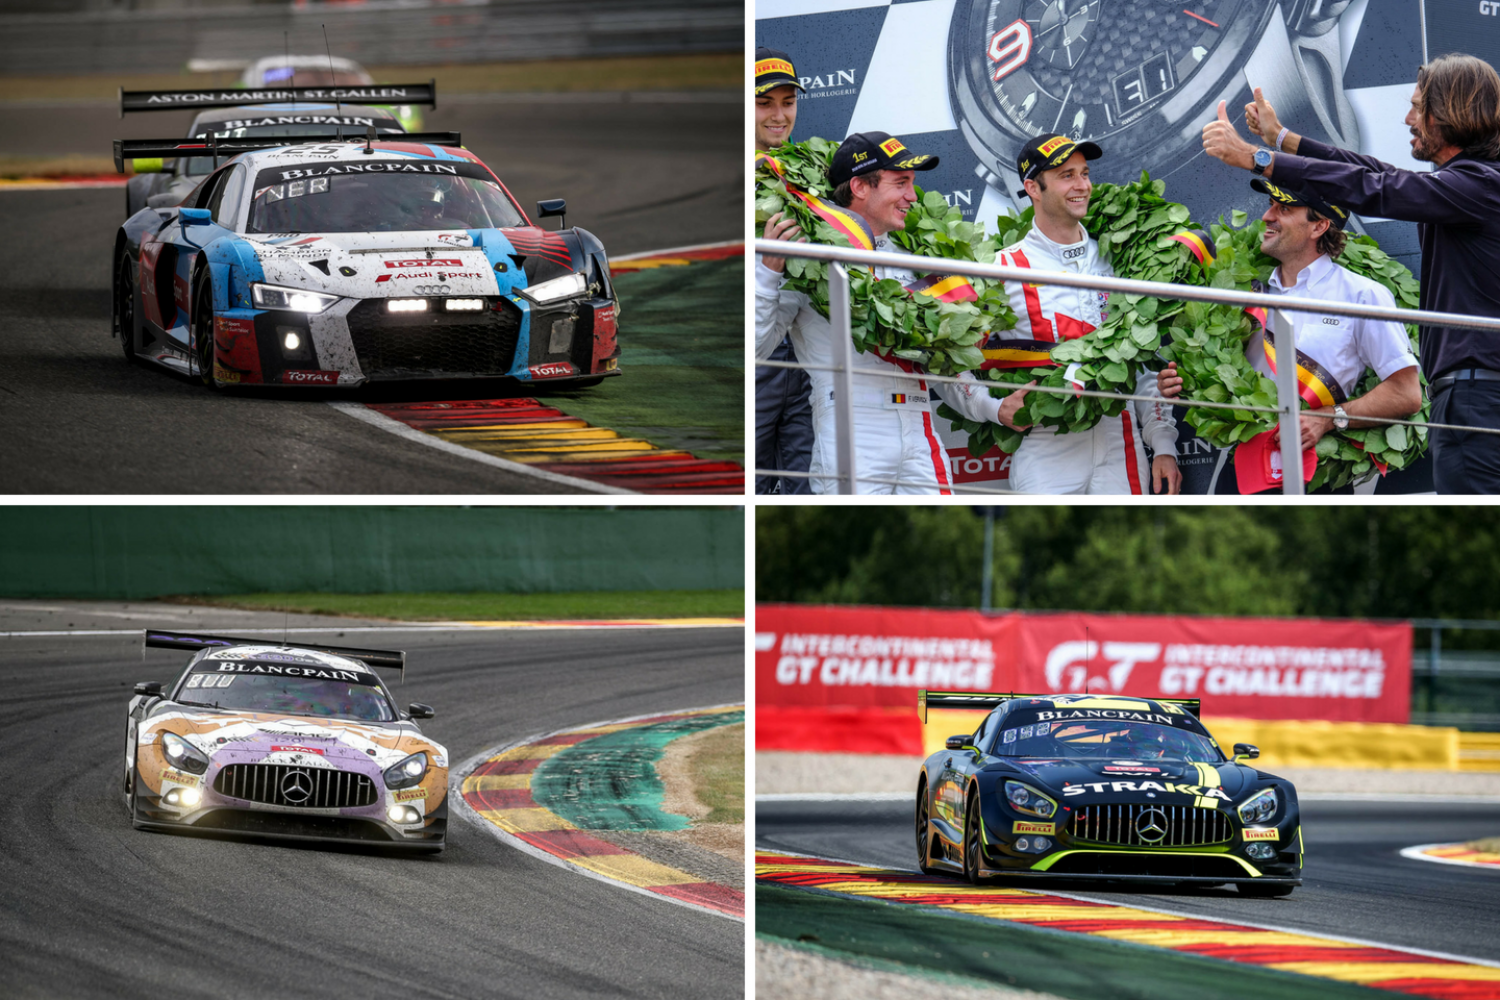 BMW wins Spa, Audi scores full points for the Intercontinental GT Challenge